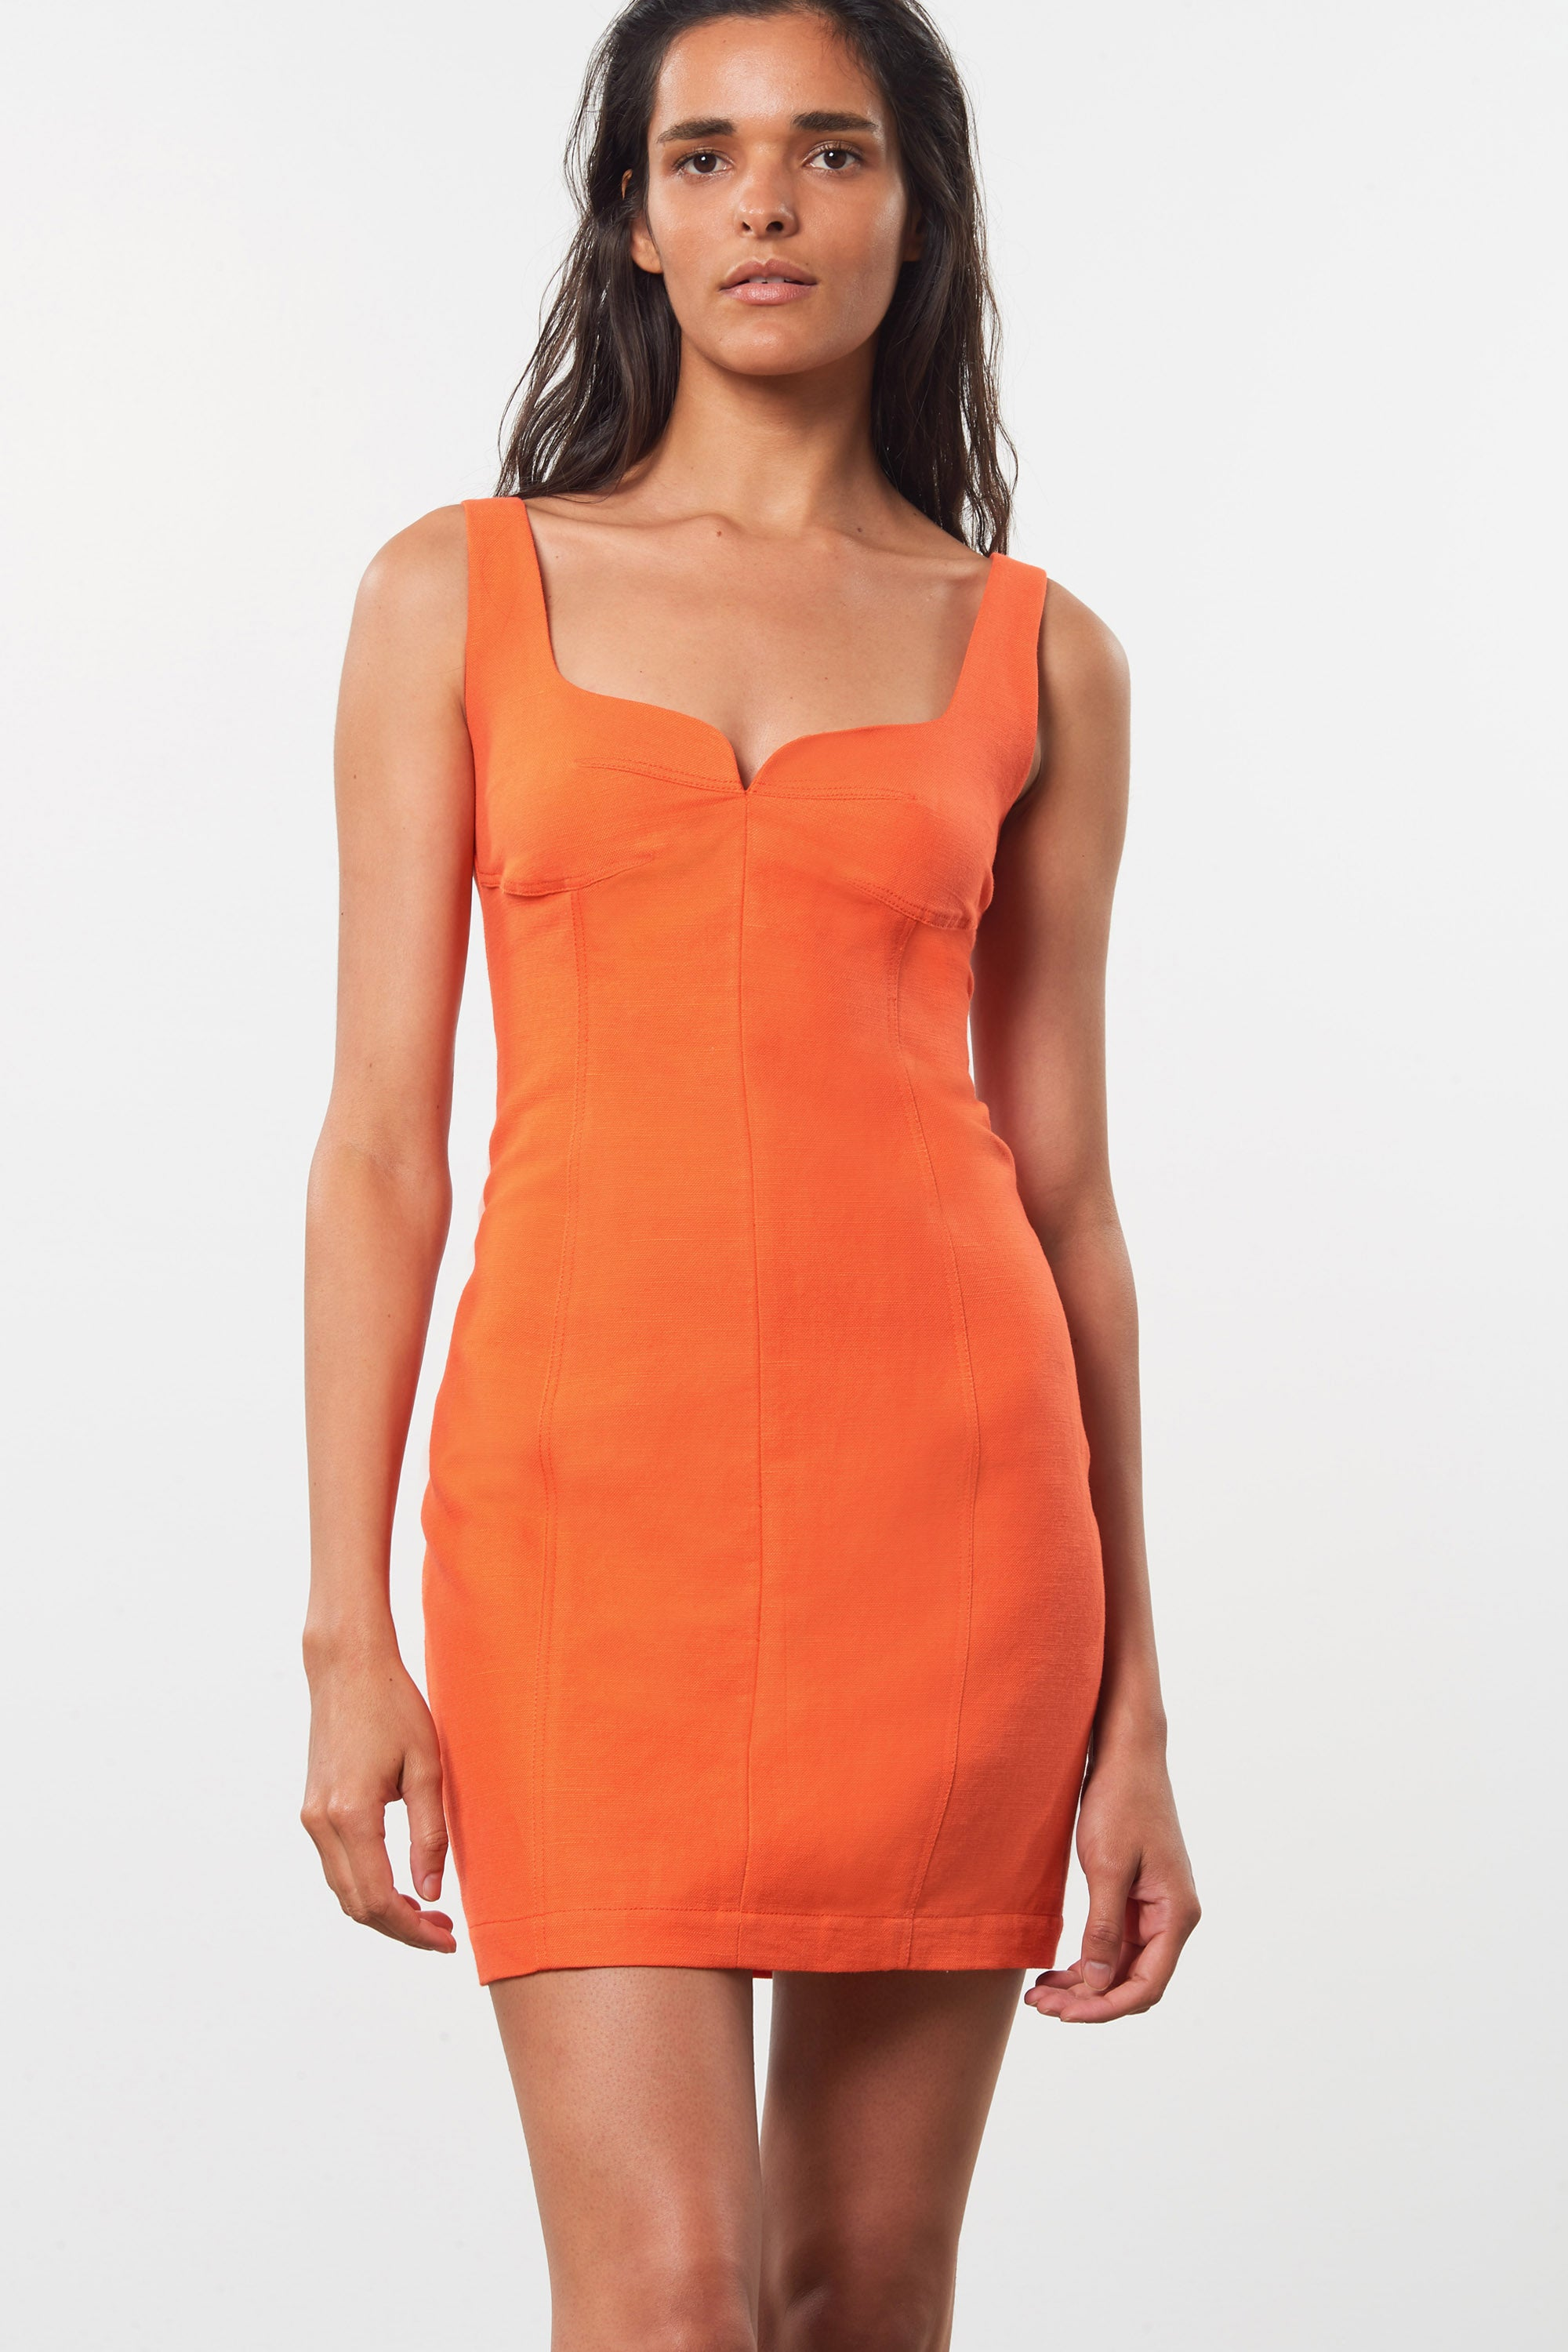 Mara Hoffman Orange Anita Dress in organic cotton and linen (front detail)